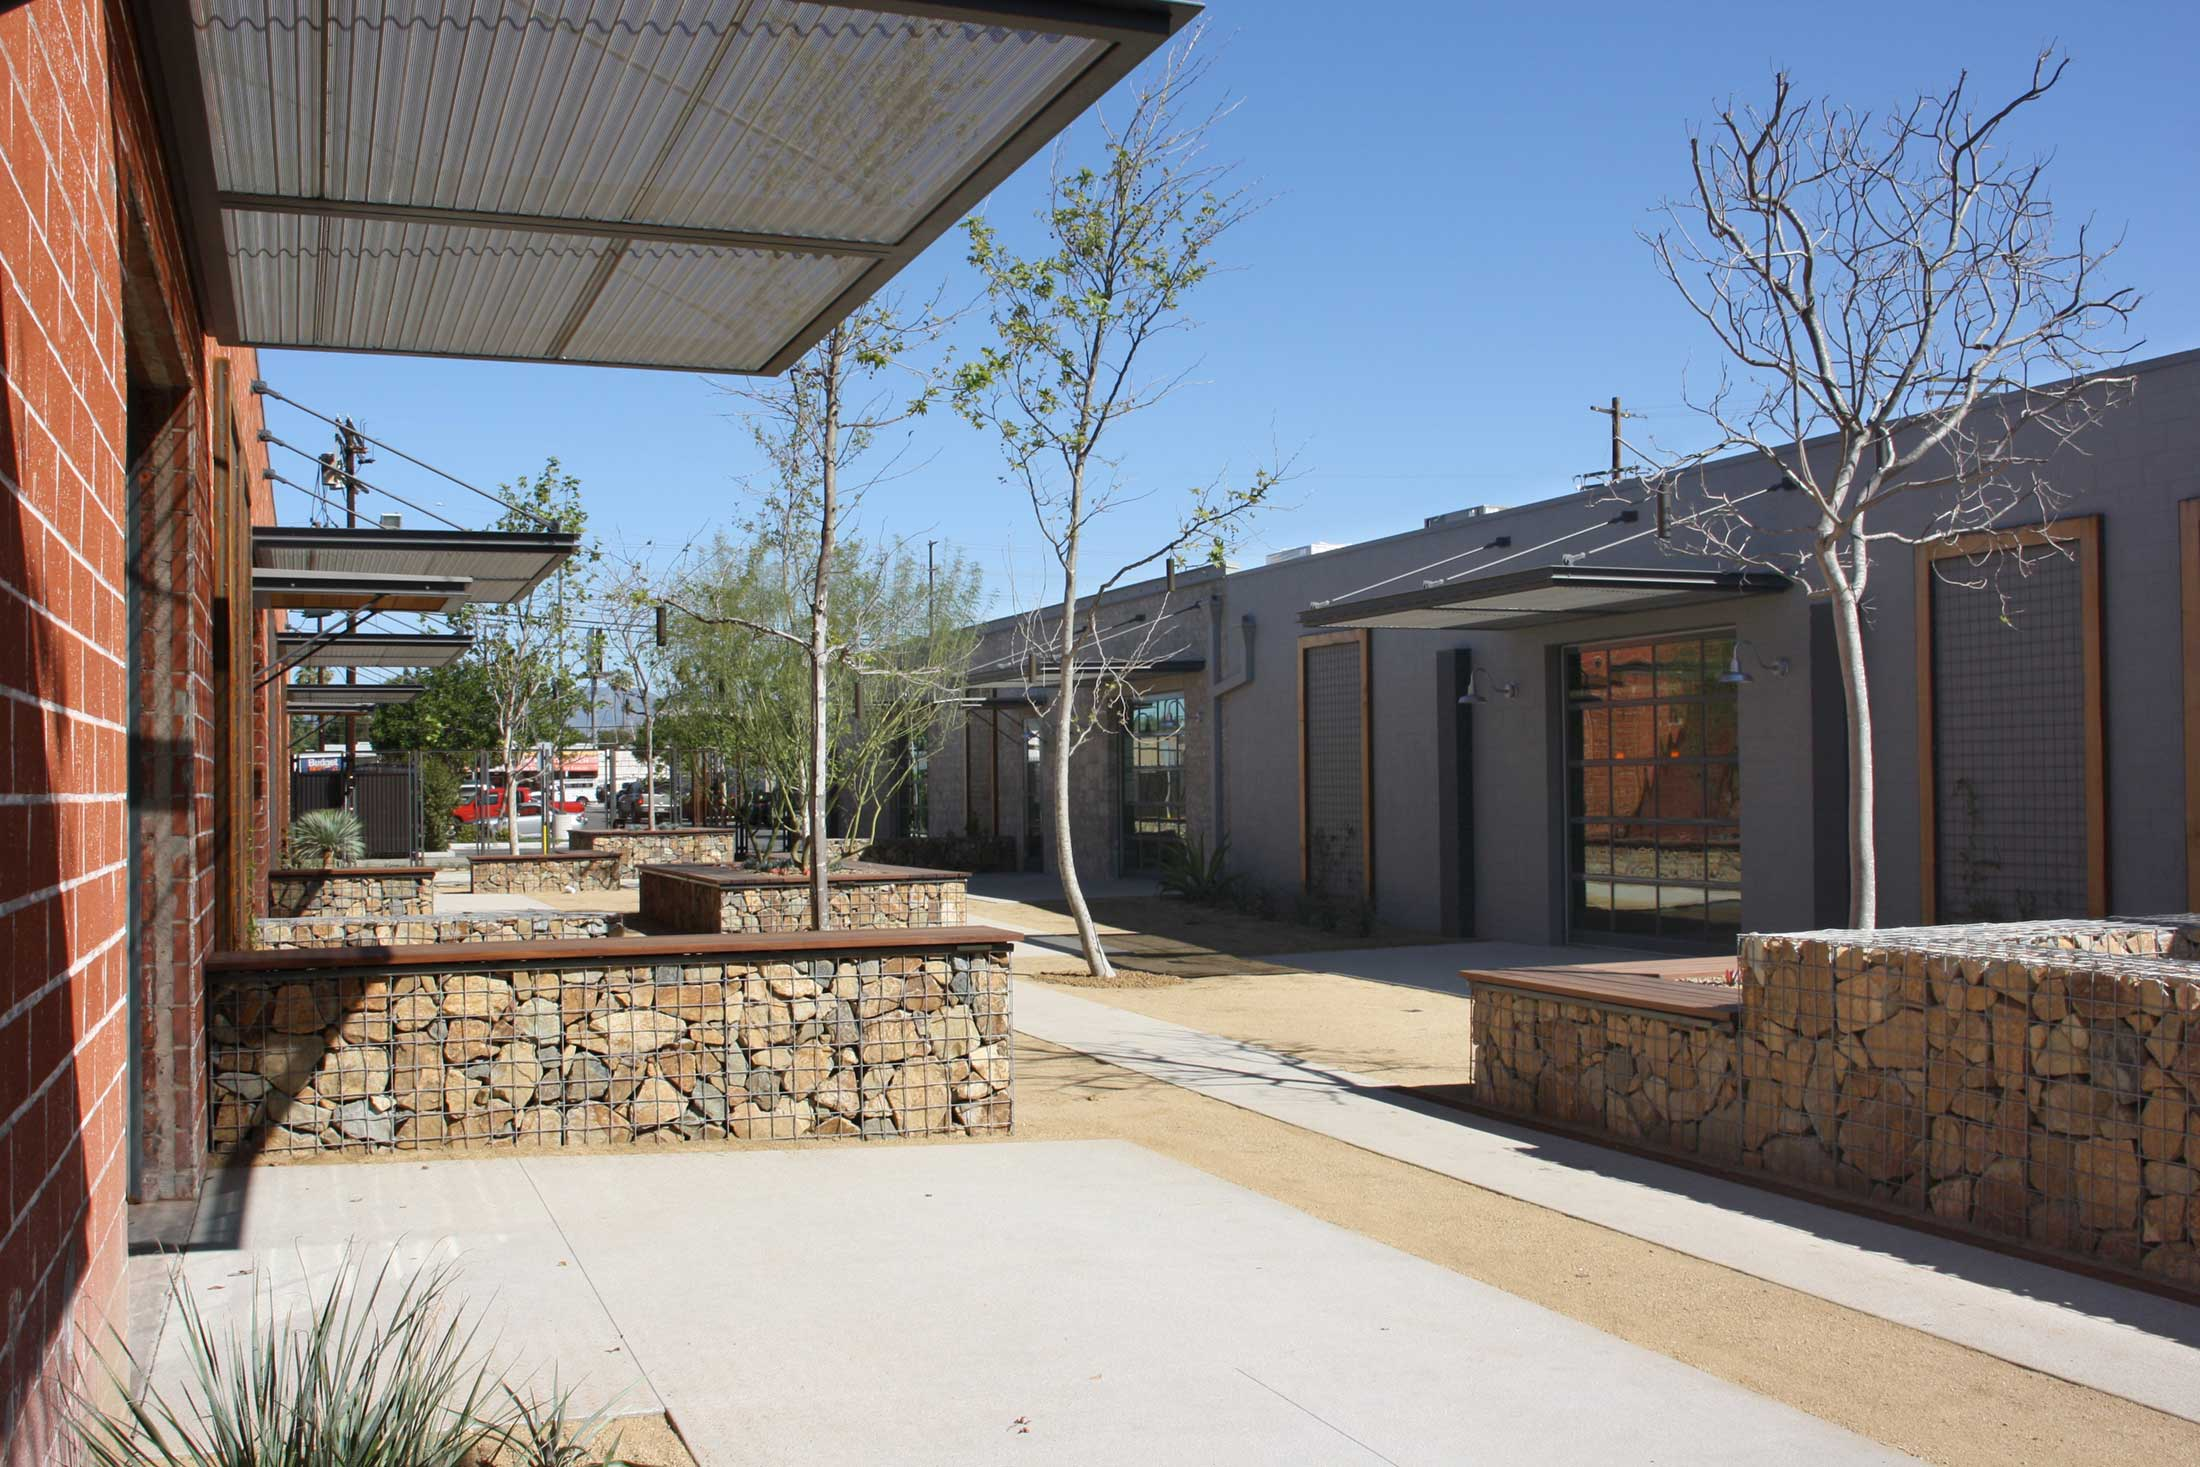 modern-architecture-commercial-building-worsplace-sustainable-adaptive-california-shubindonaldson-ranch-07